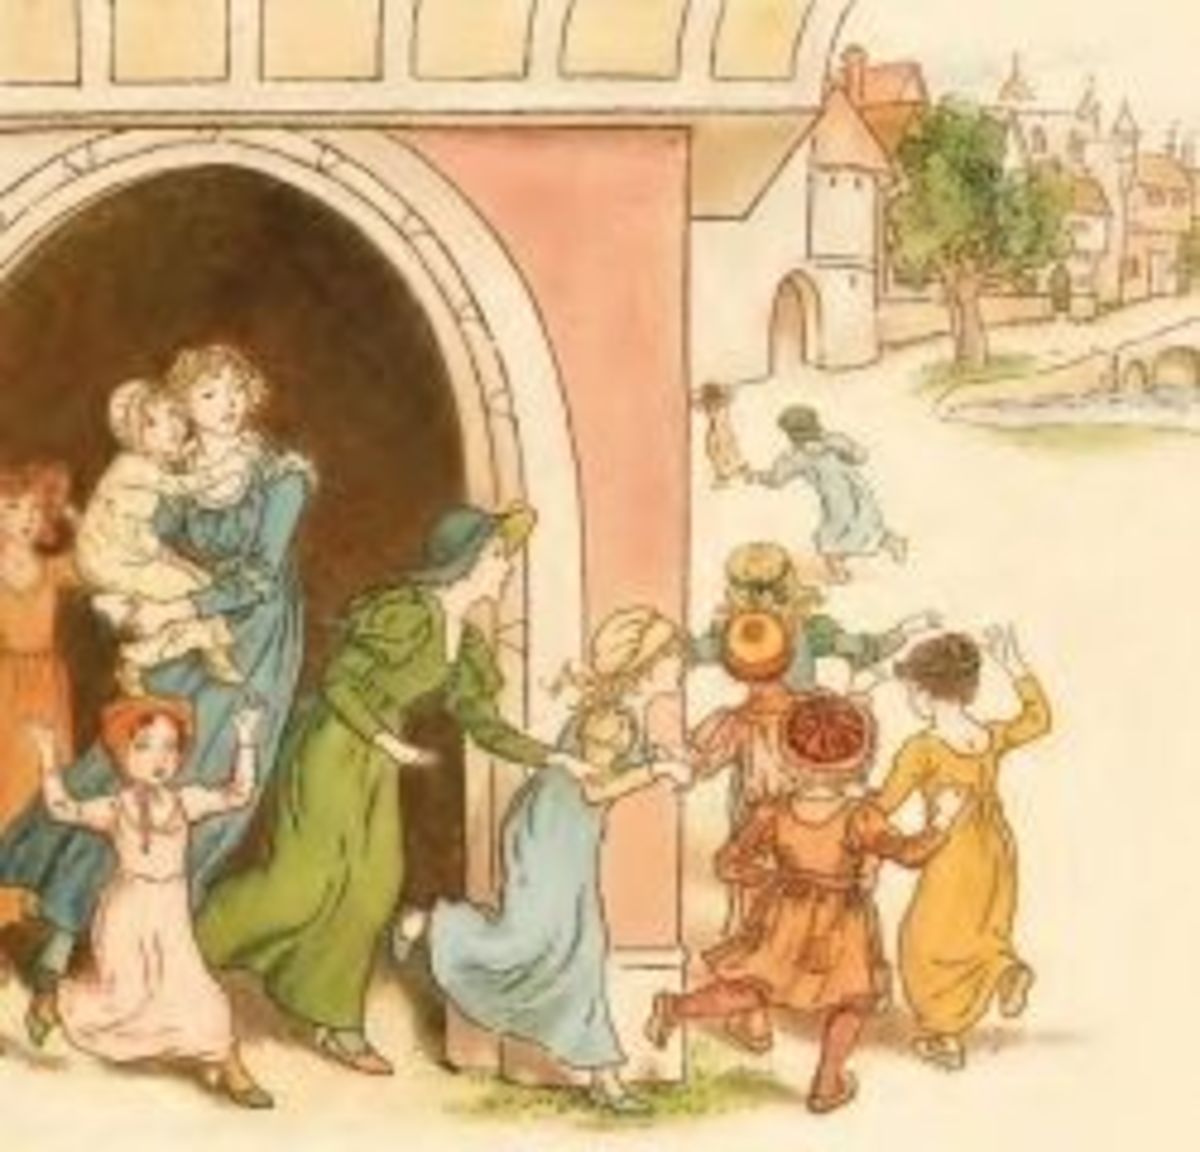 Why kids left the town of Hamelin?